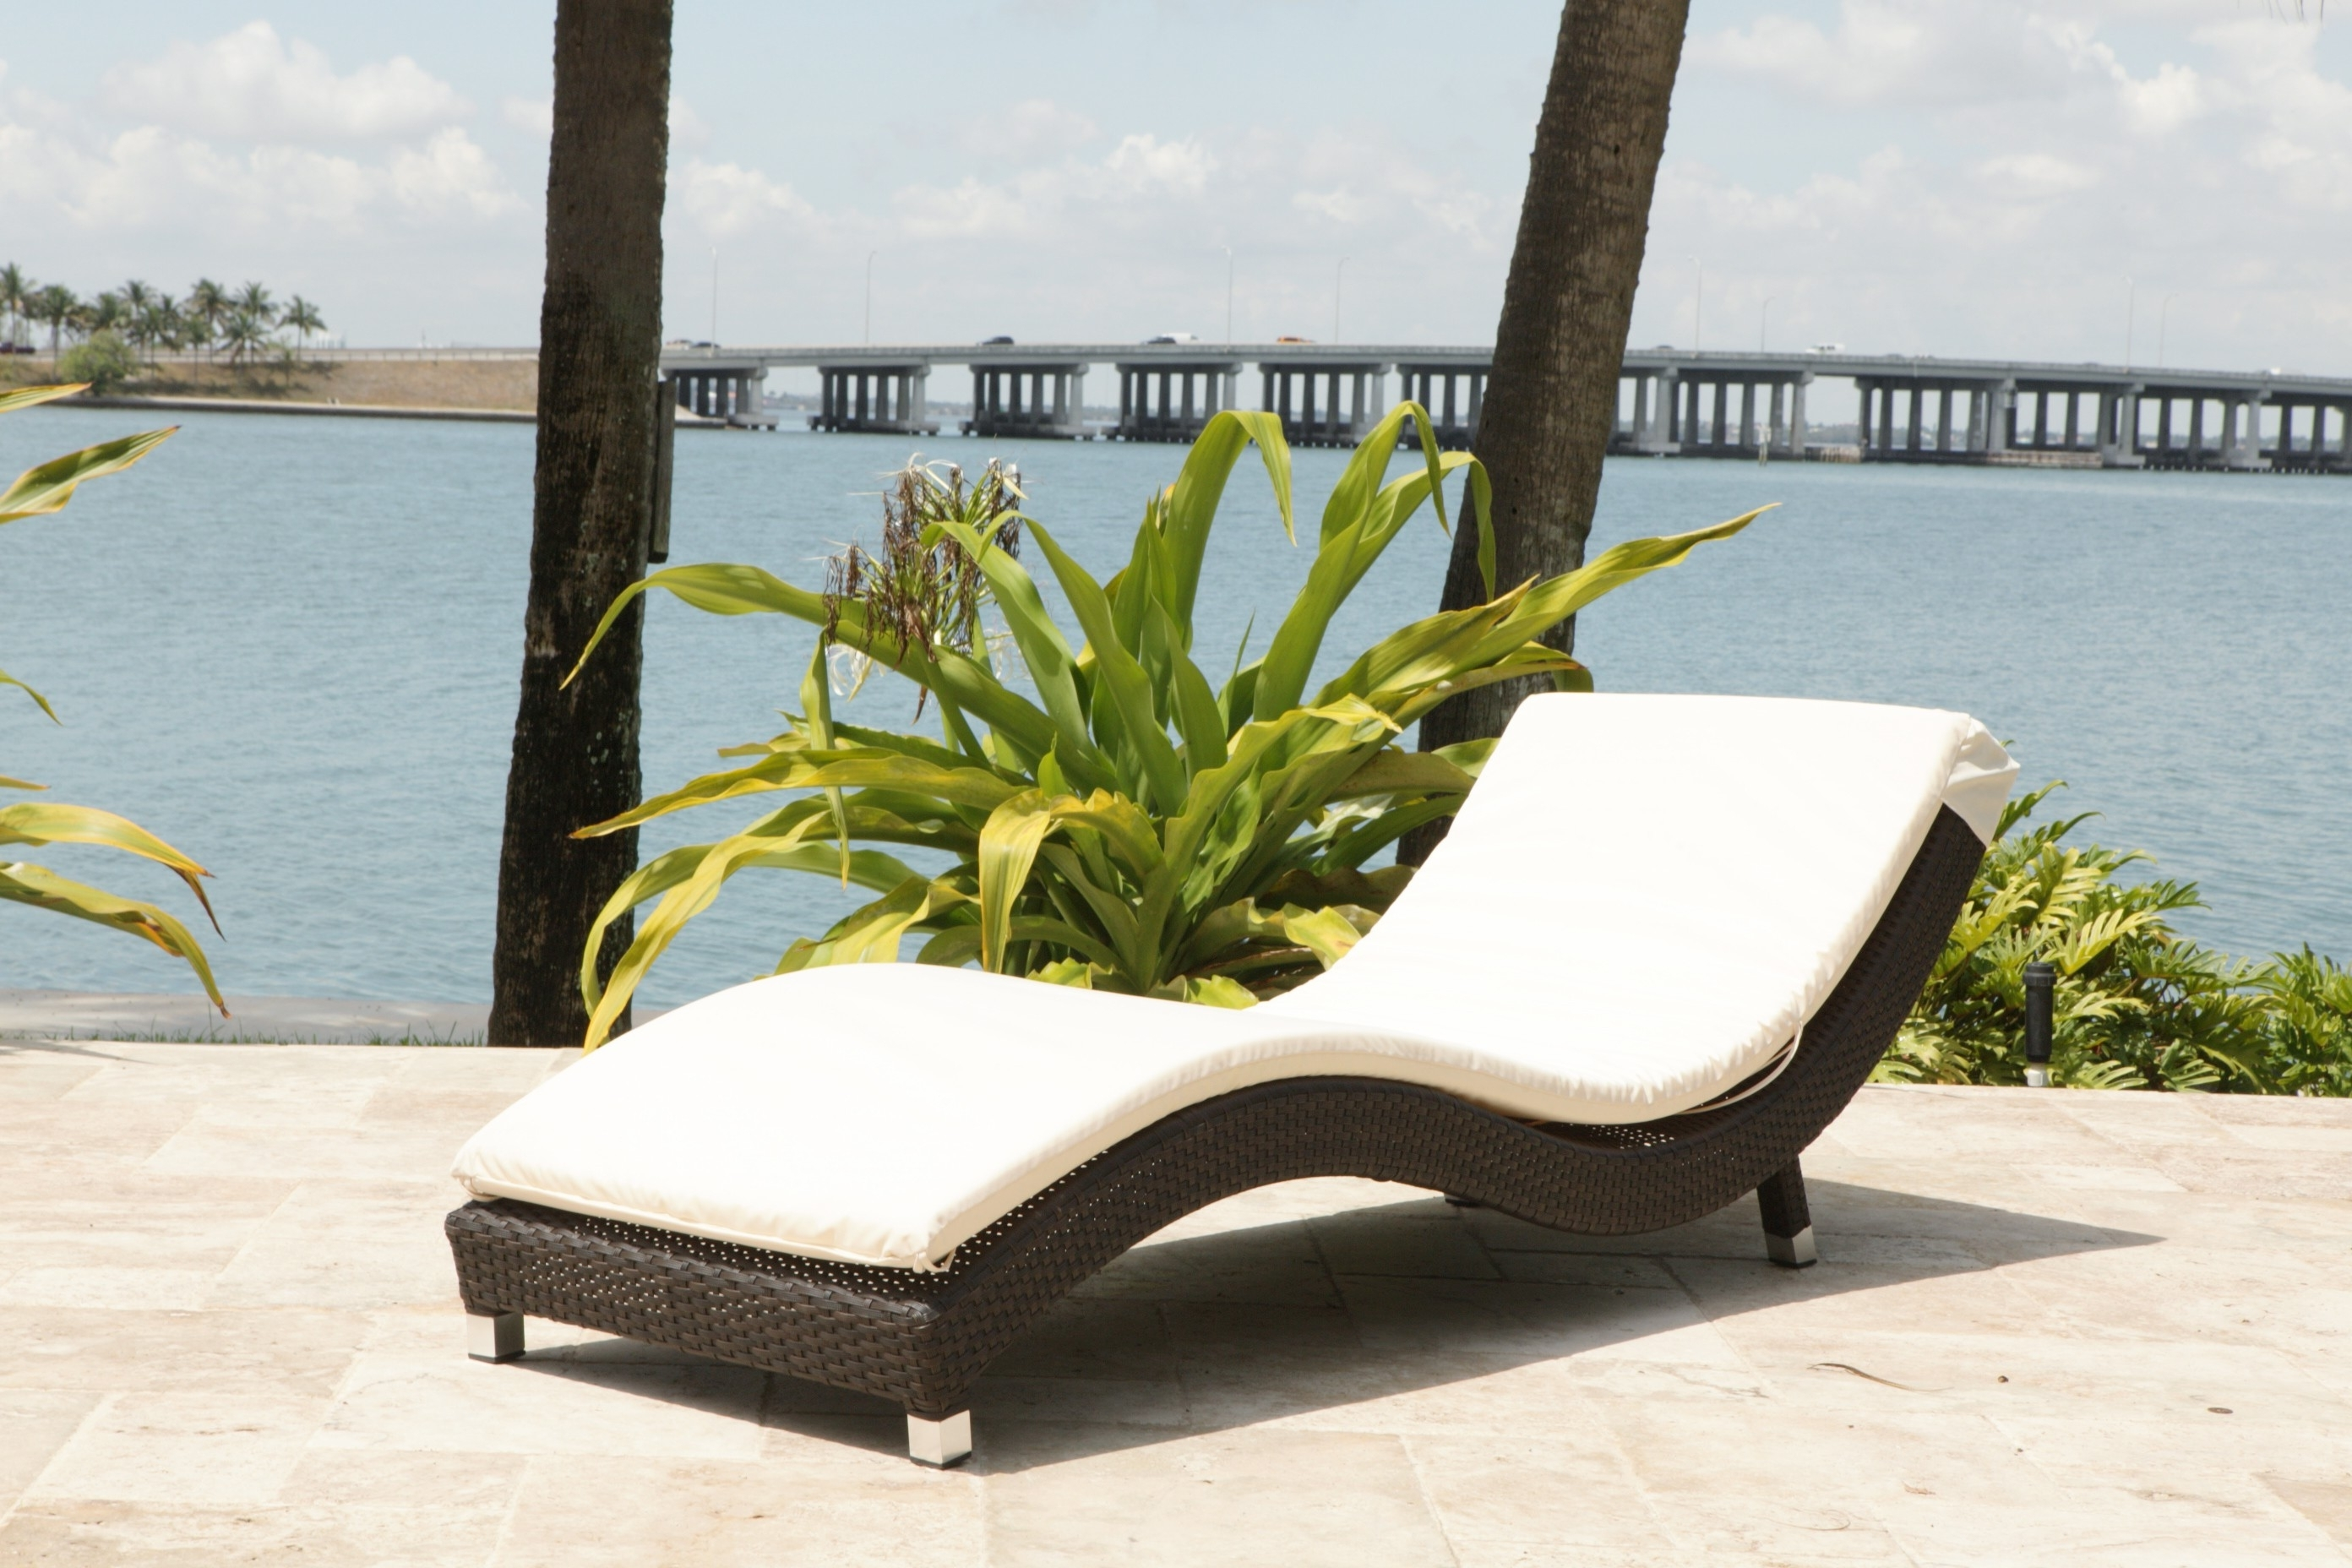 Preferred Outdoor : White Tufted Chaise Lounge Discount Indoor Chaise With Regard To Chaise Lounge Chairs For Outdoor (View 14 of 15)